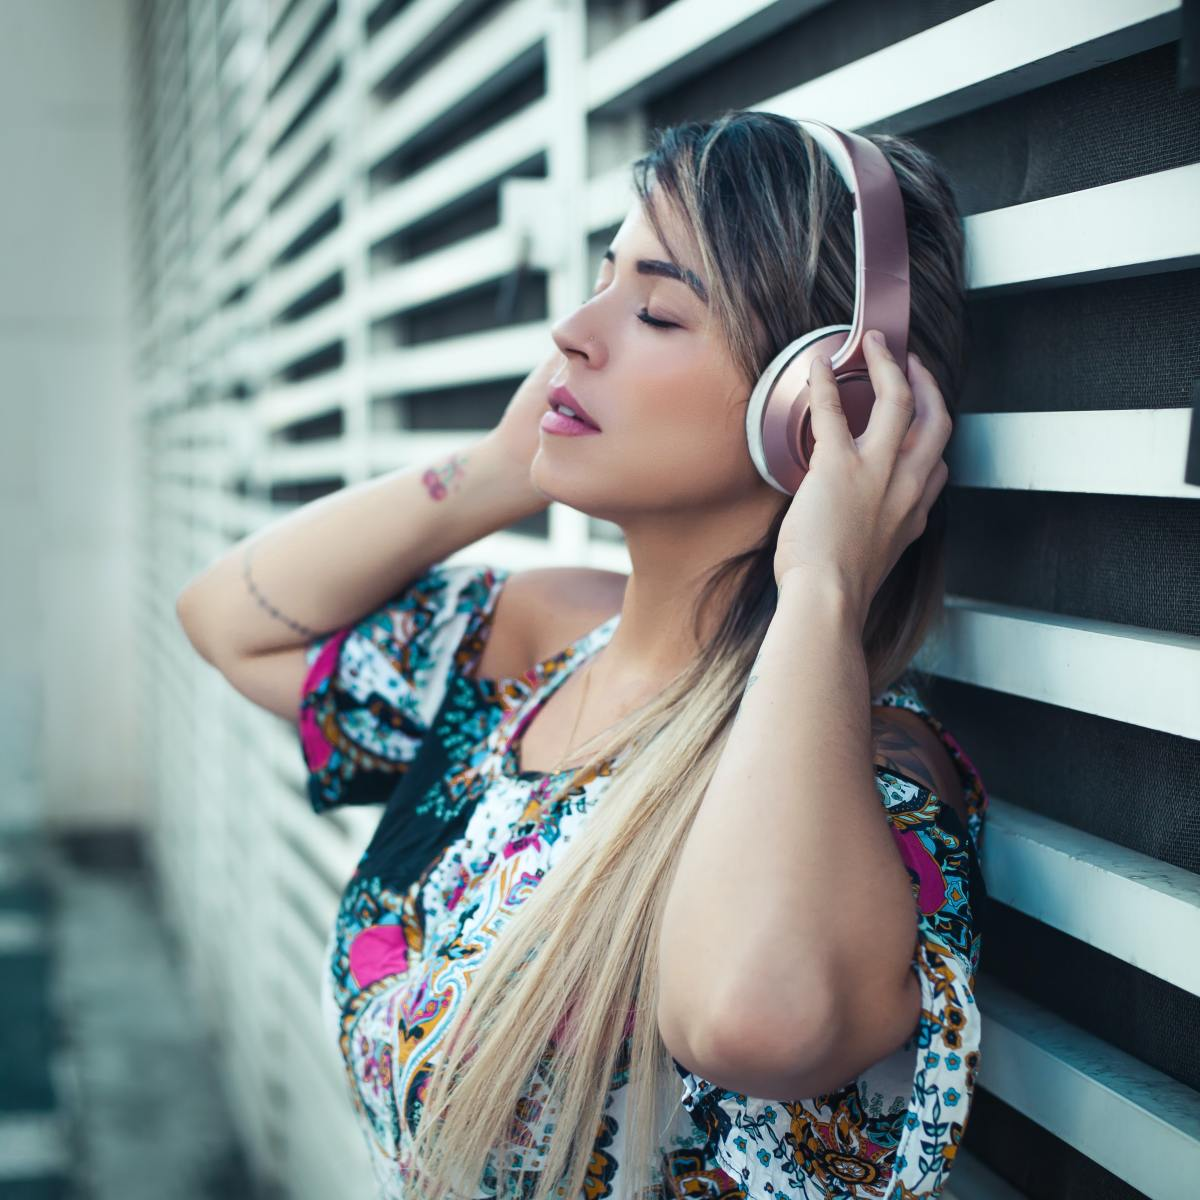 Listening to Music Is a Great Mood Lifter